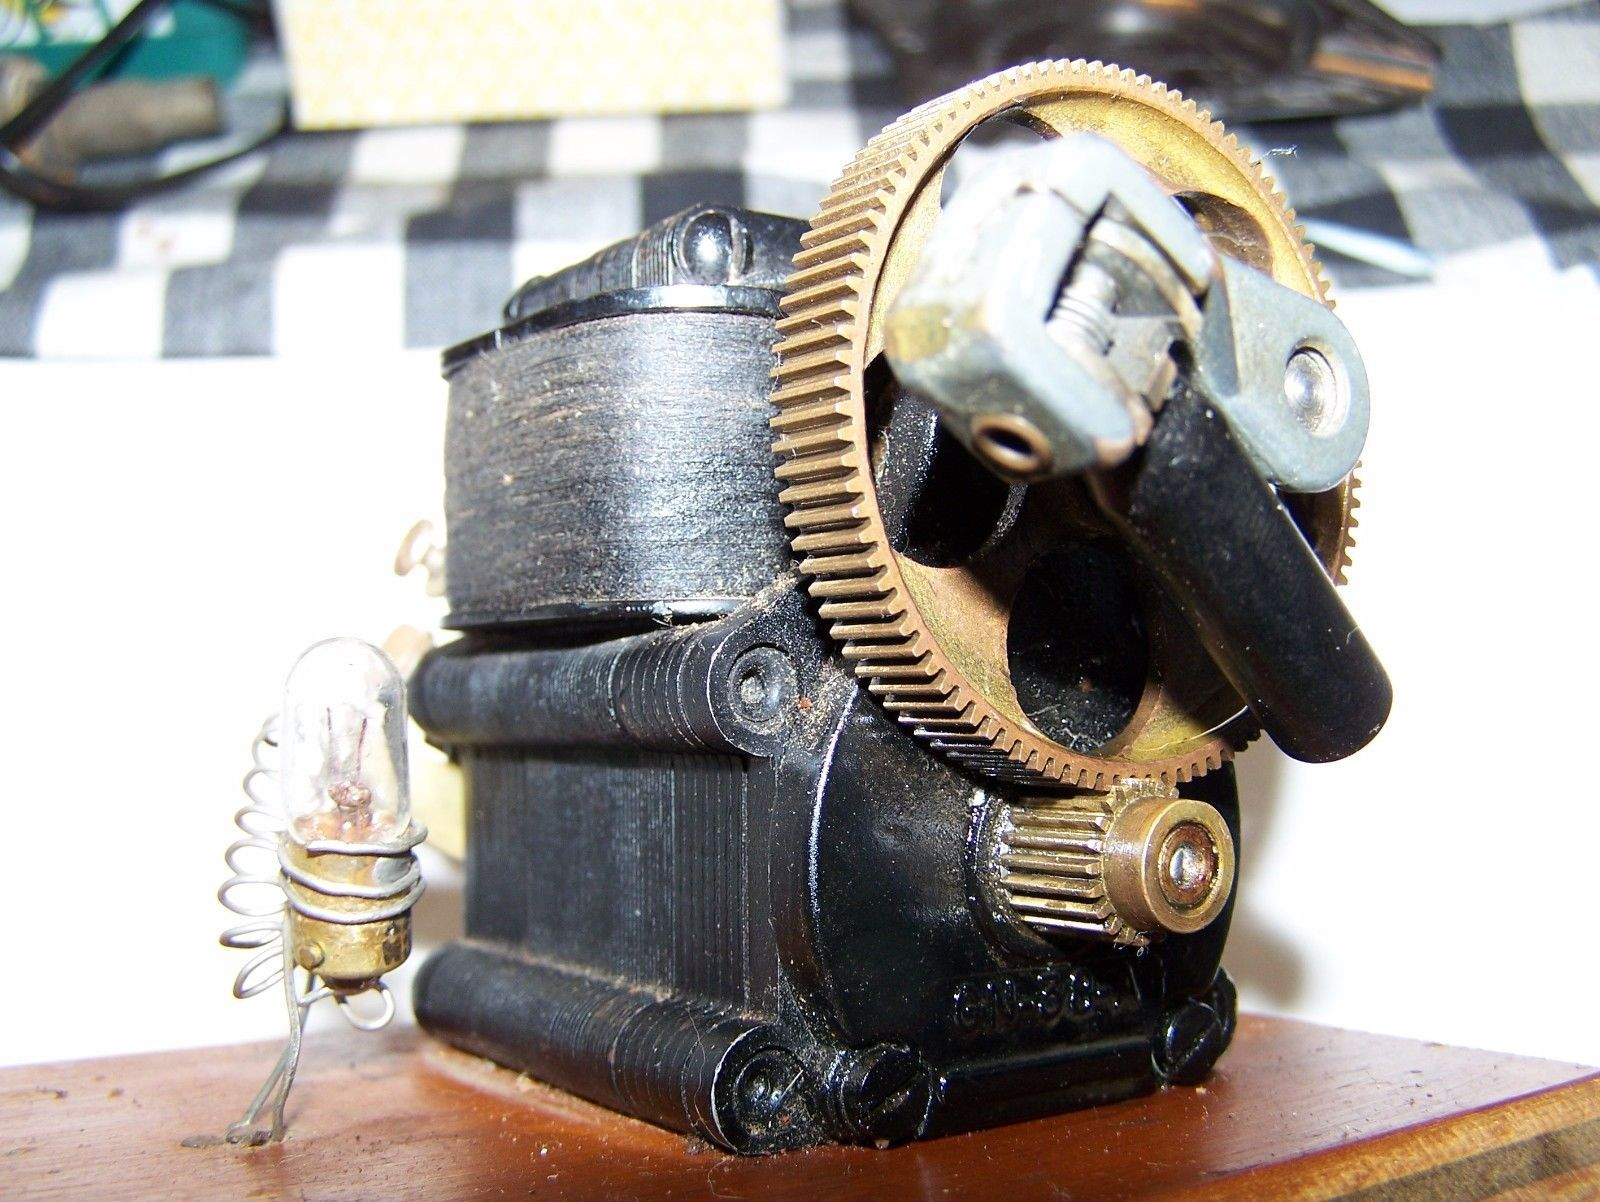 Old Toy ELECTRIC GENERATOR DYNAMO Small Steam Model Steam Hit Miss